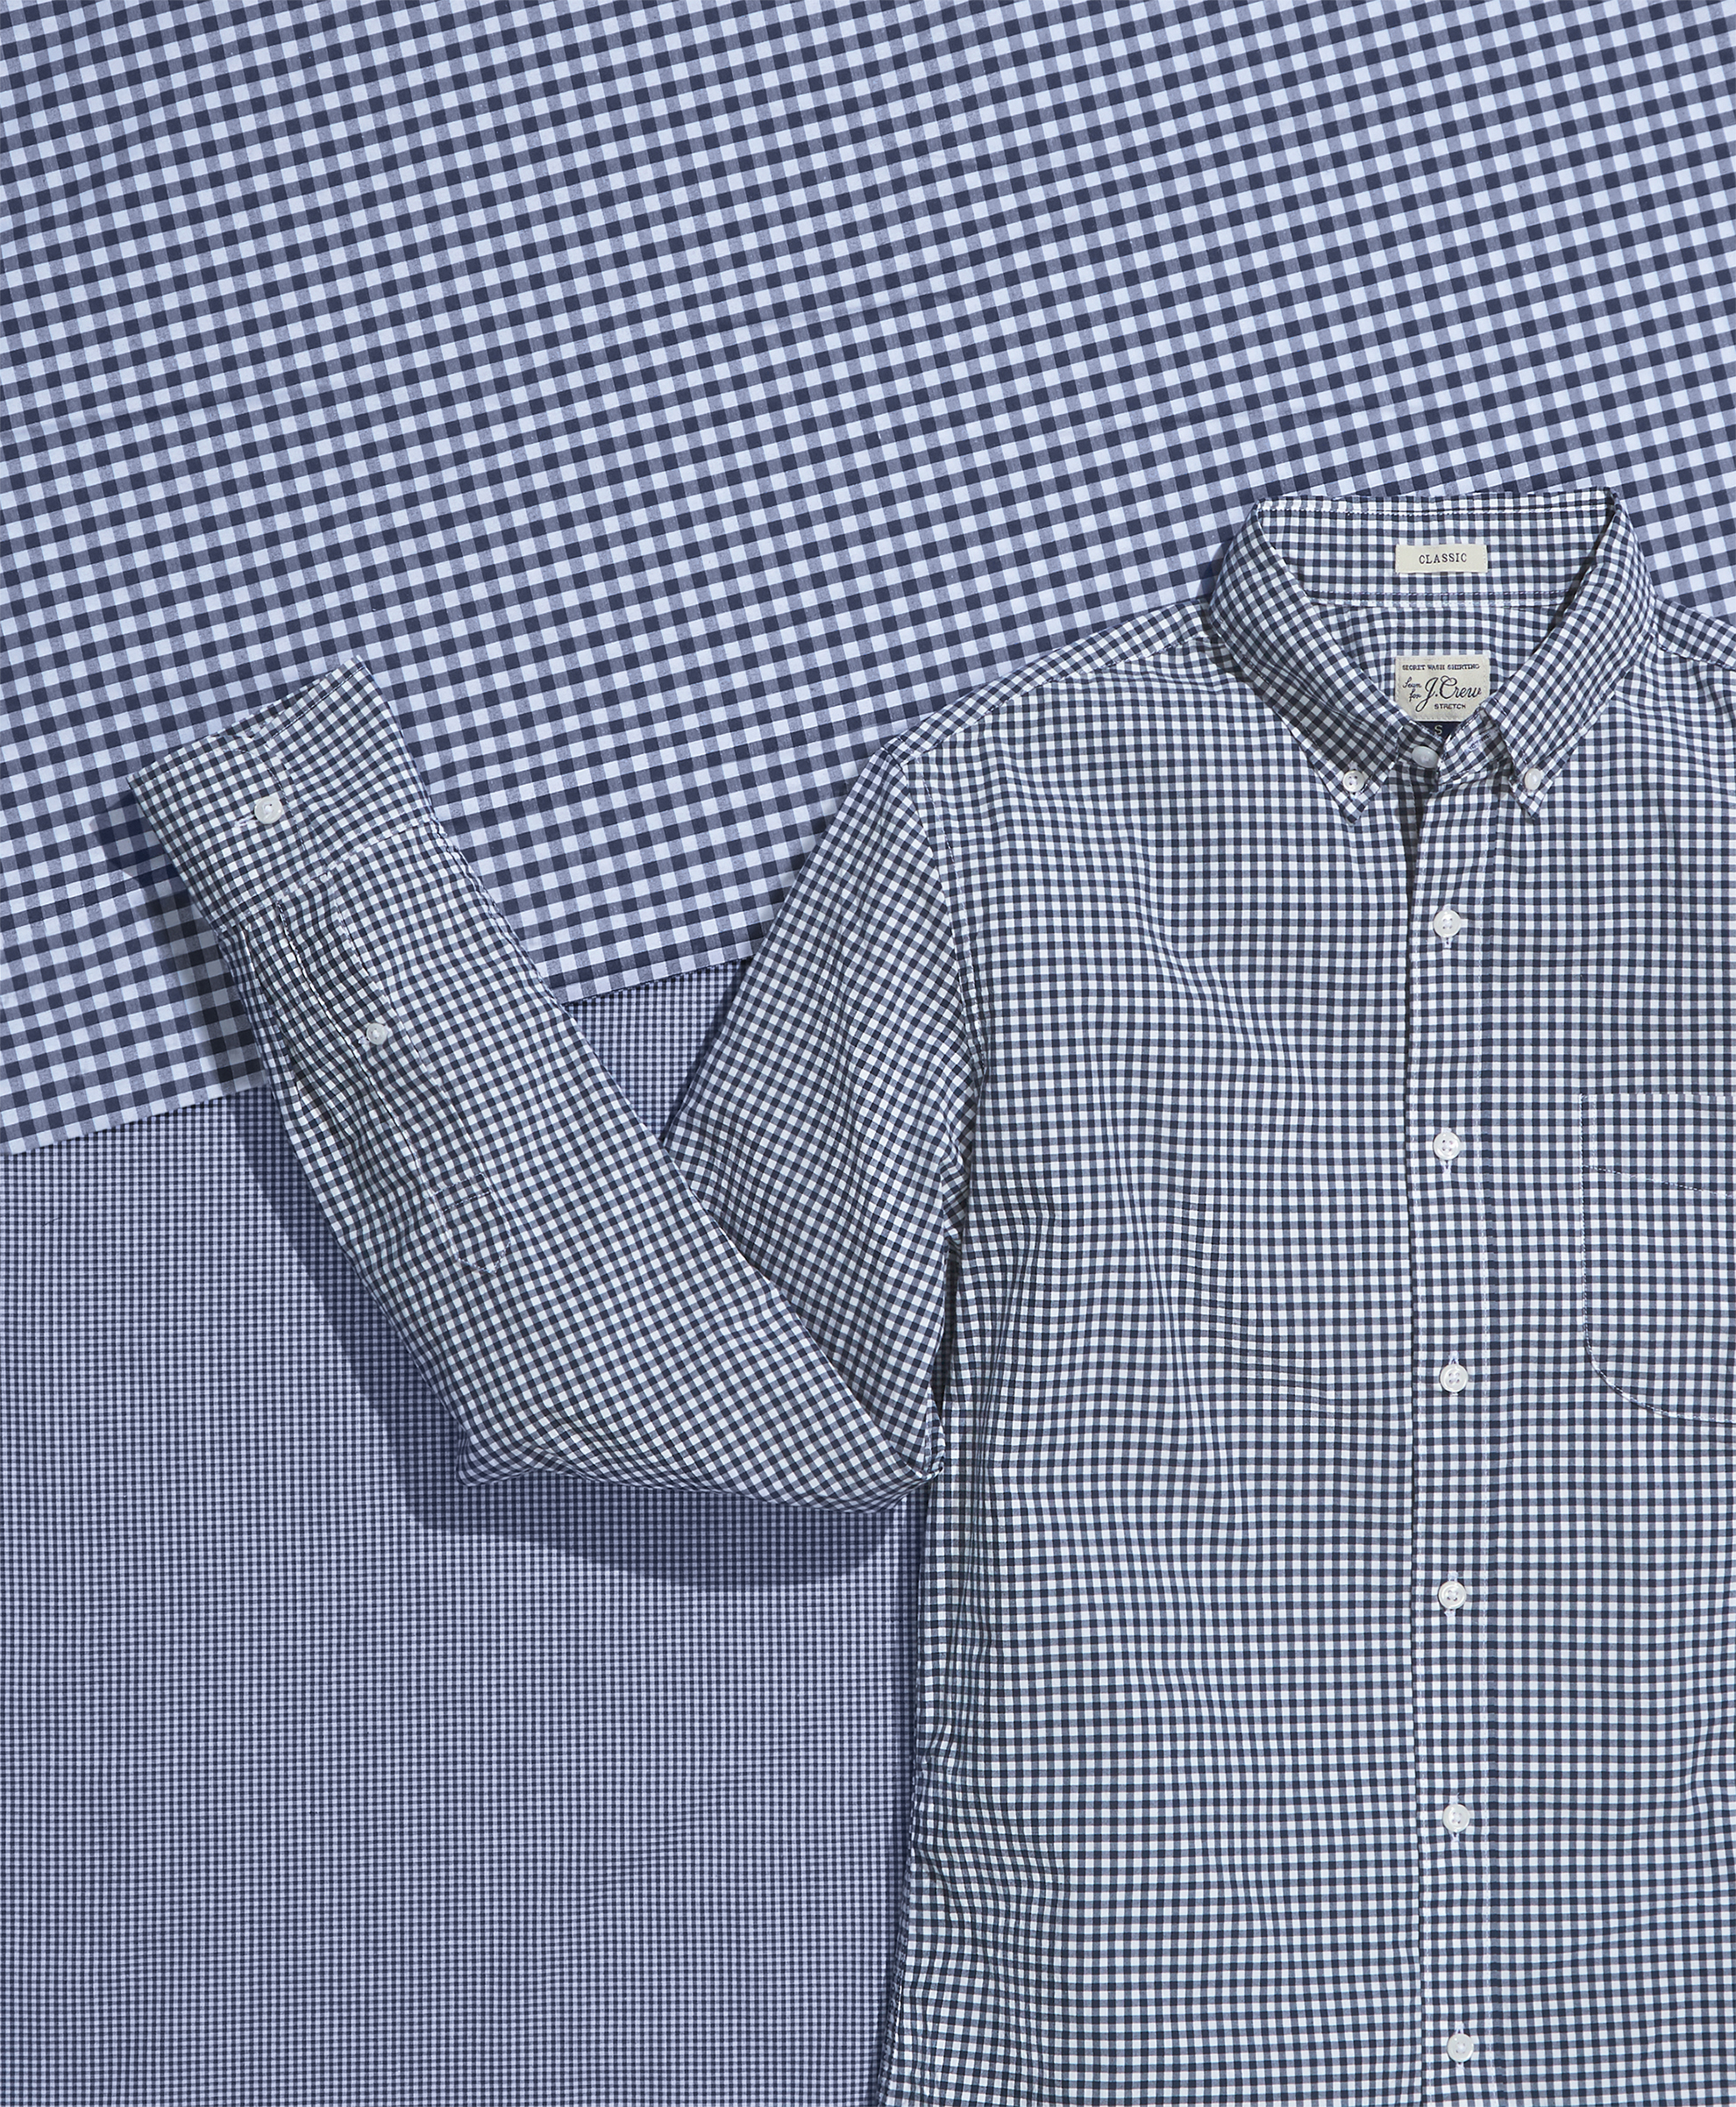 A J. Crew shirt has inspired not only an Instagram feed but a debate. For more of this shirt tale, turn the page.